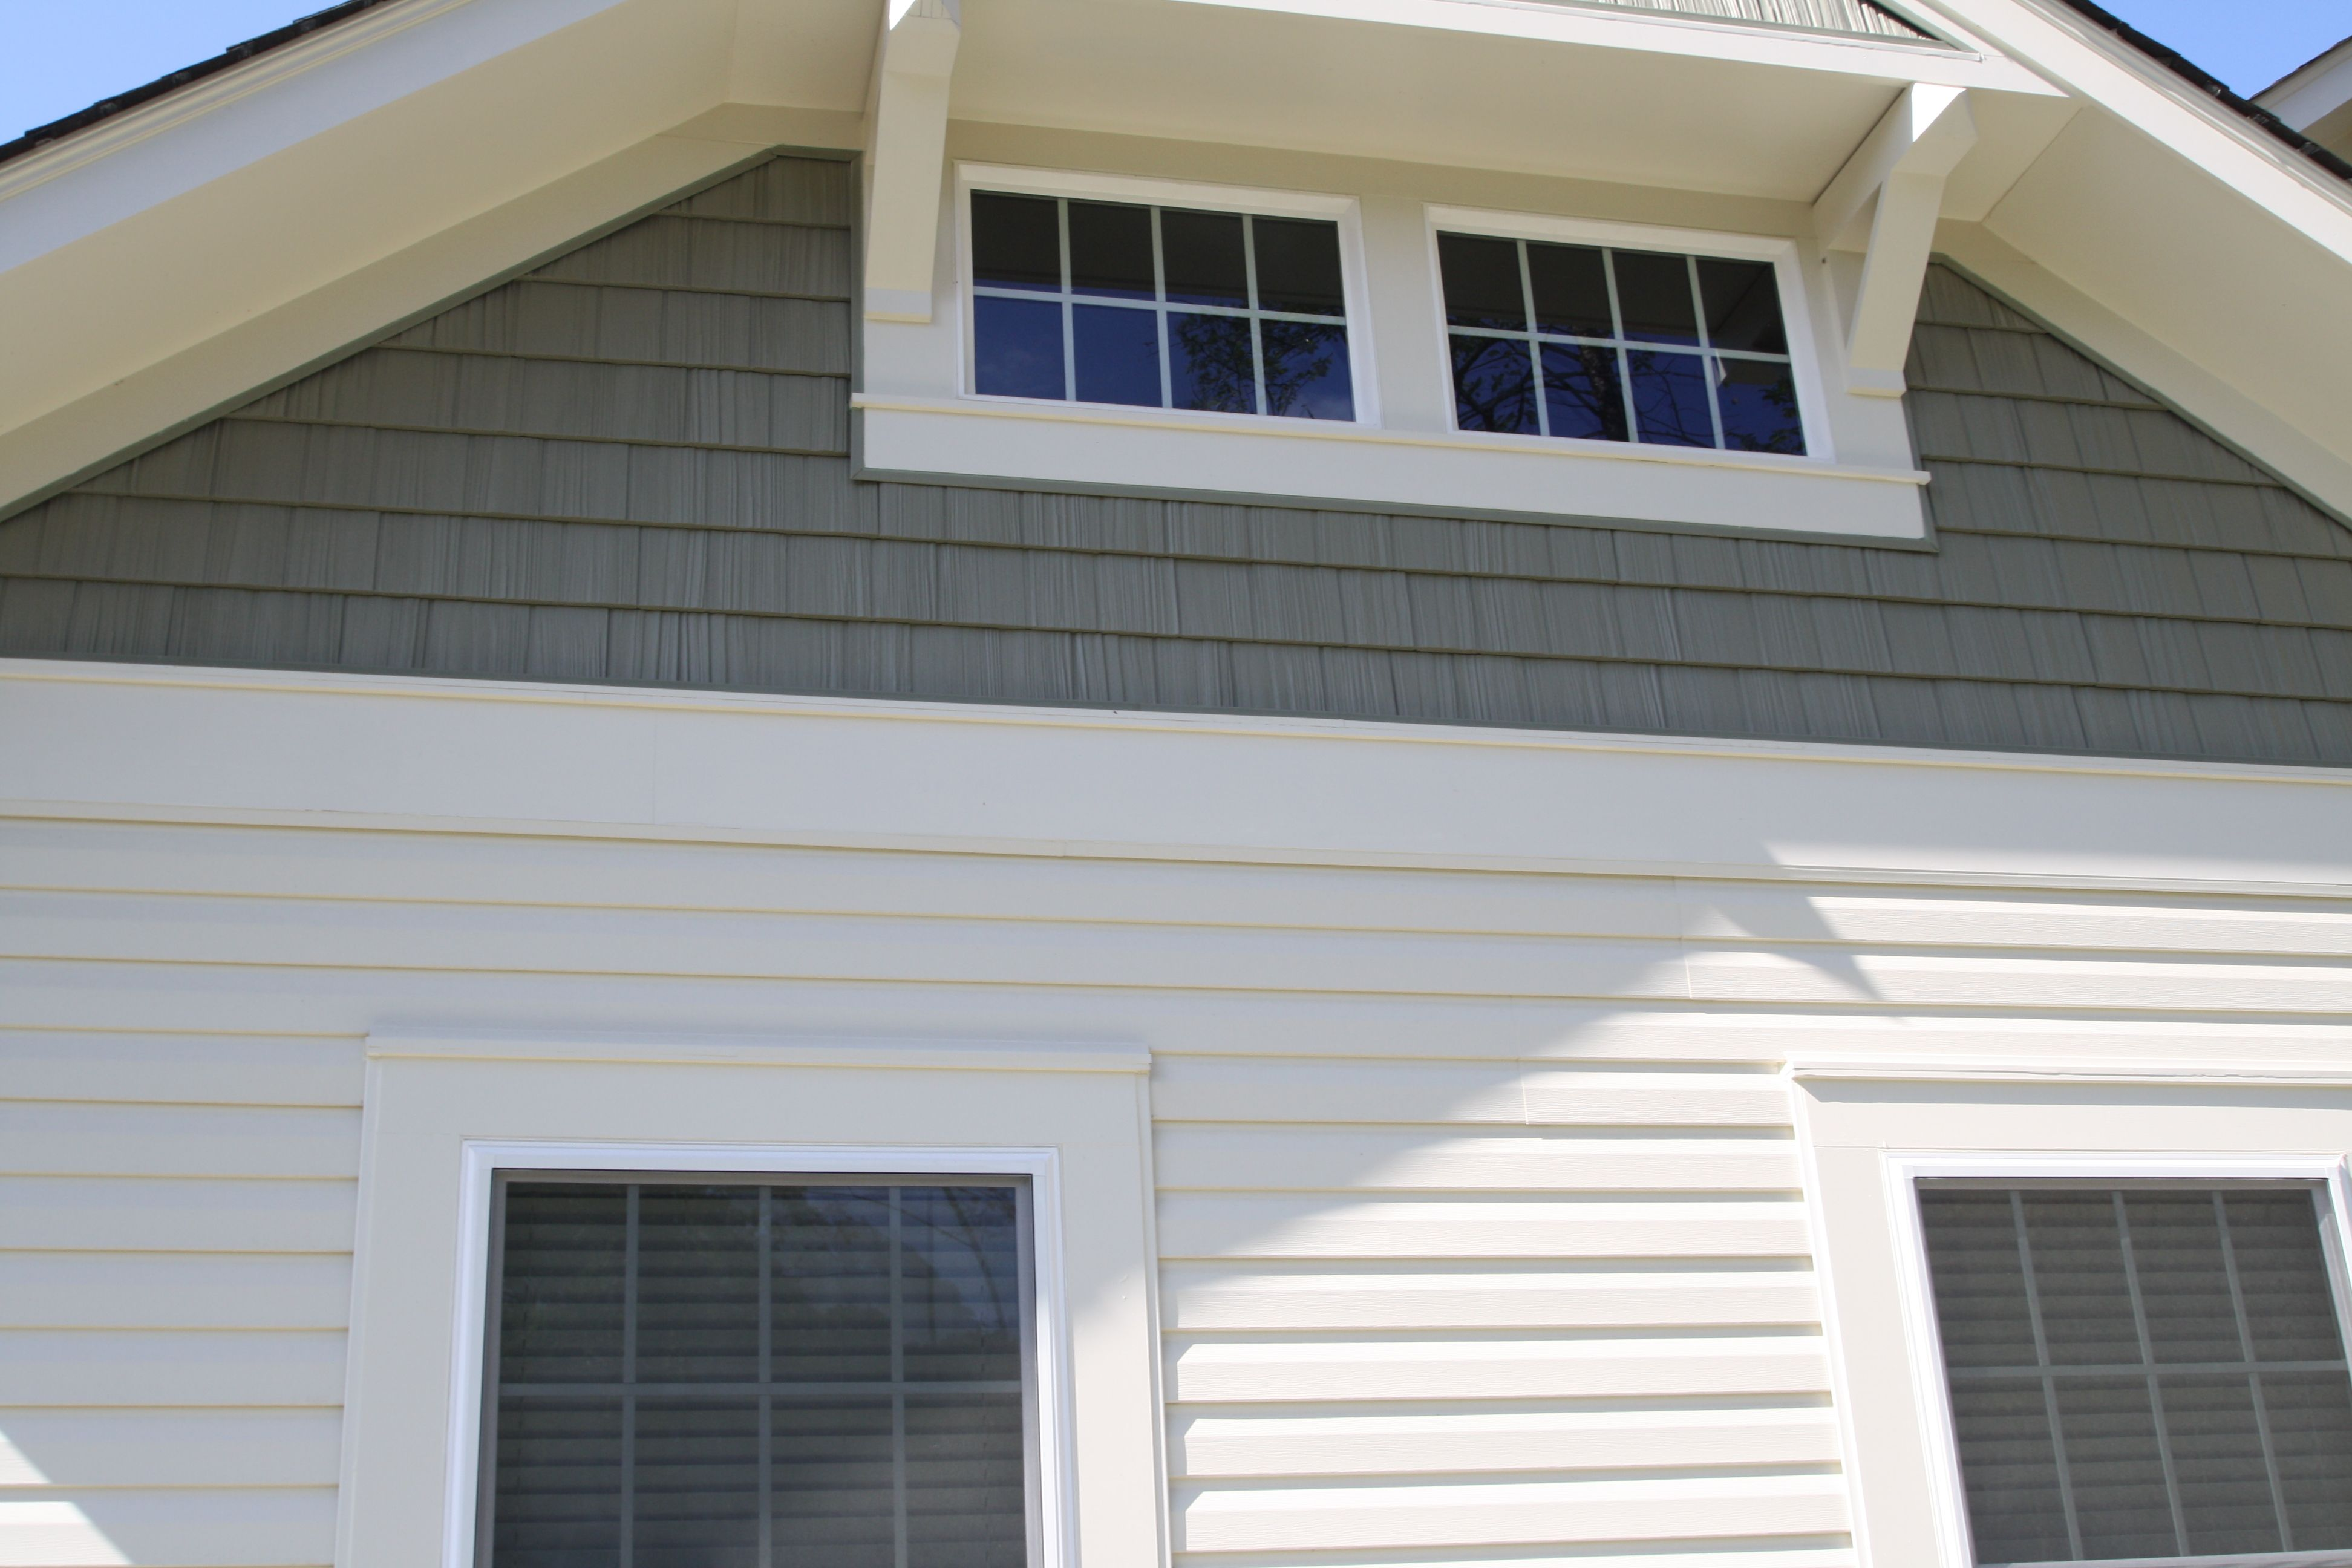 Chic Hardie Plank Siding For Exterior Design Ideas: Awesome Exterior ...